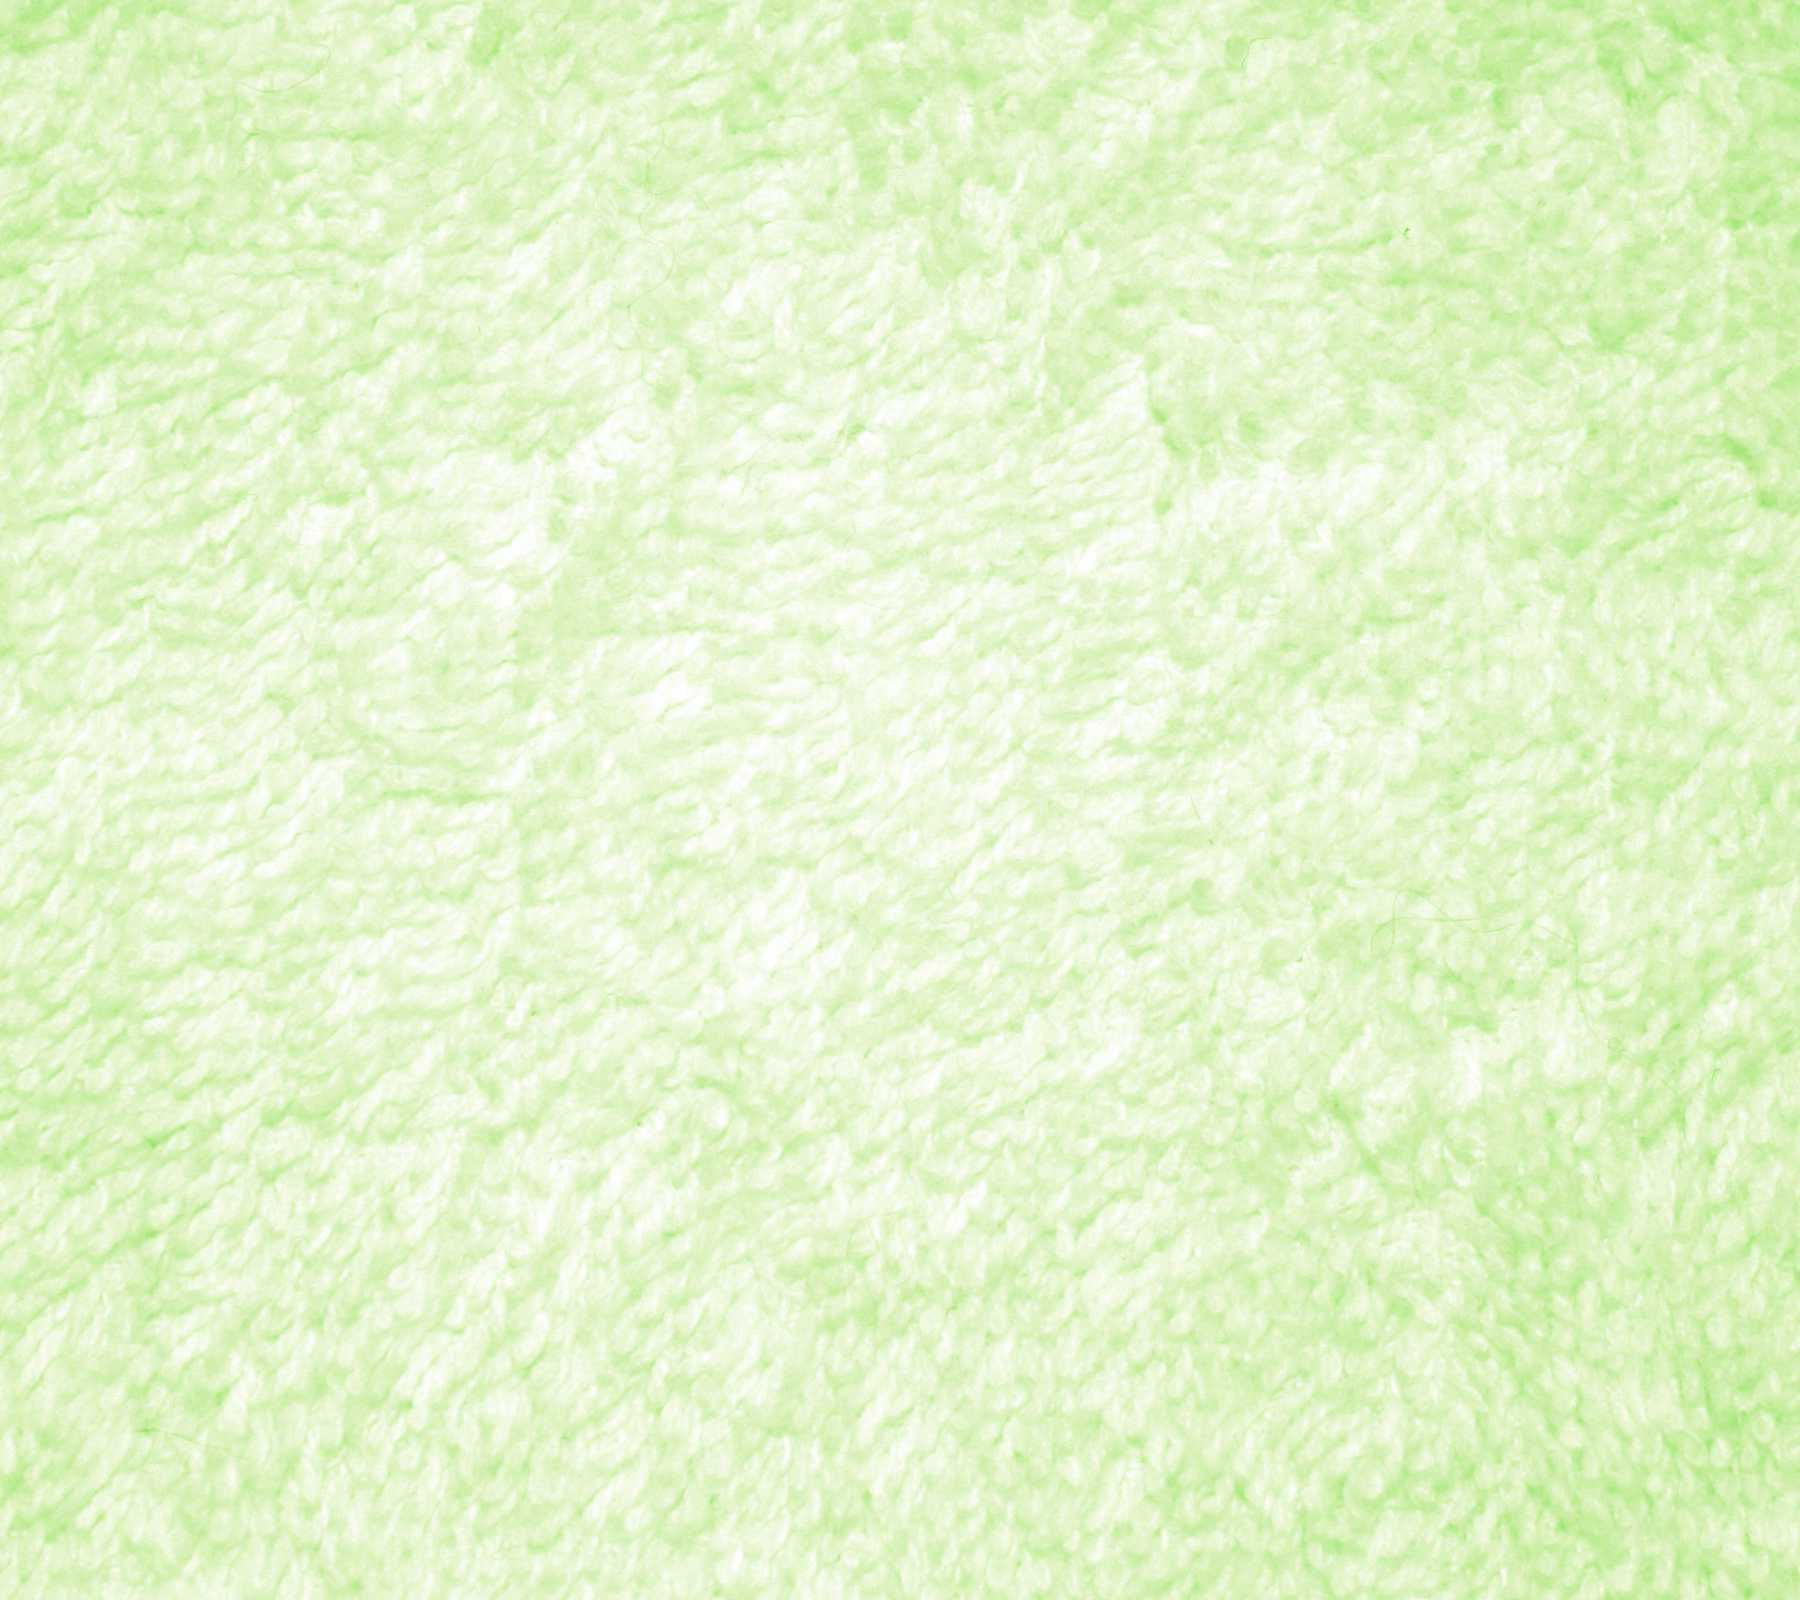 Wallpapers For Light Green Design Background